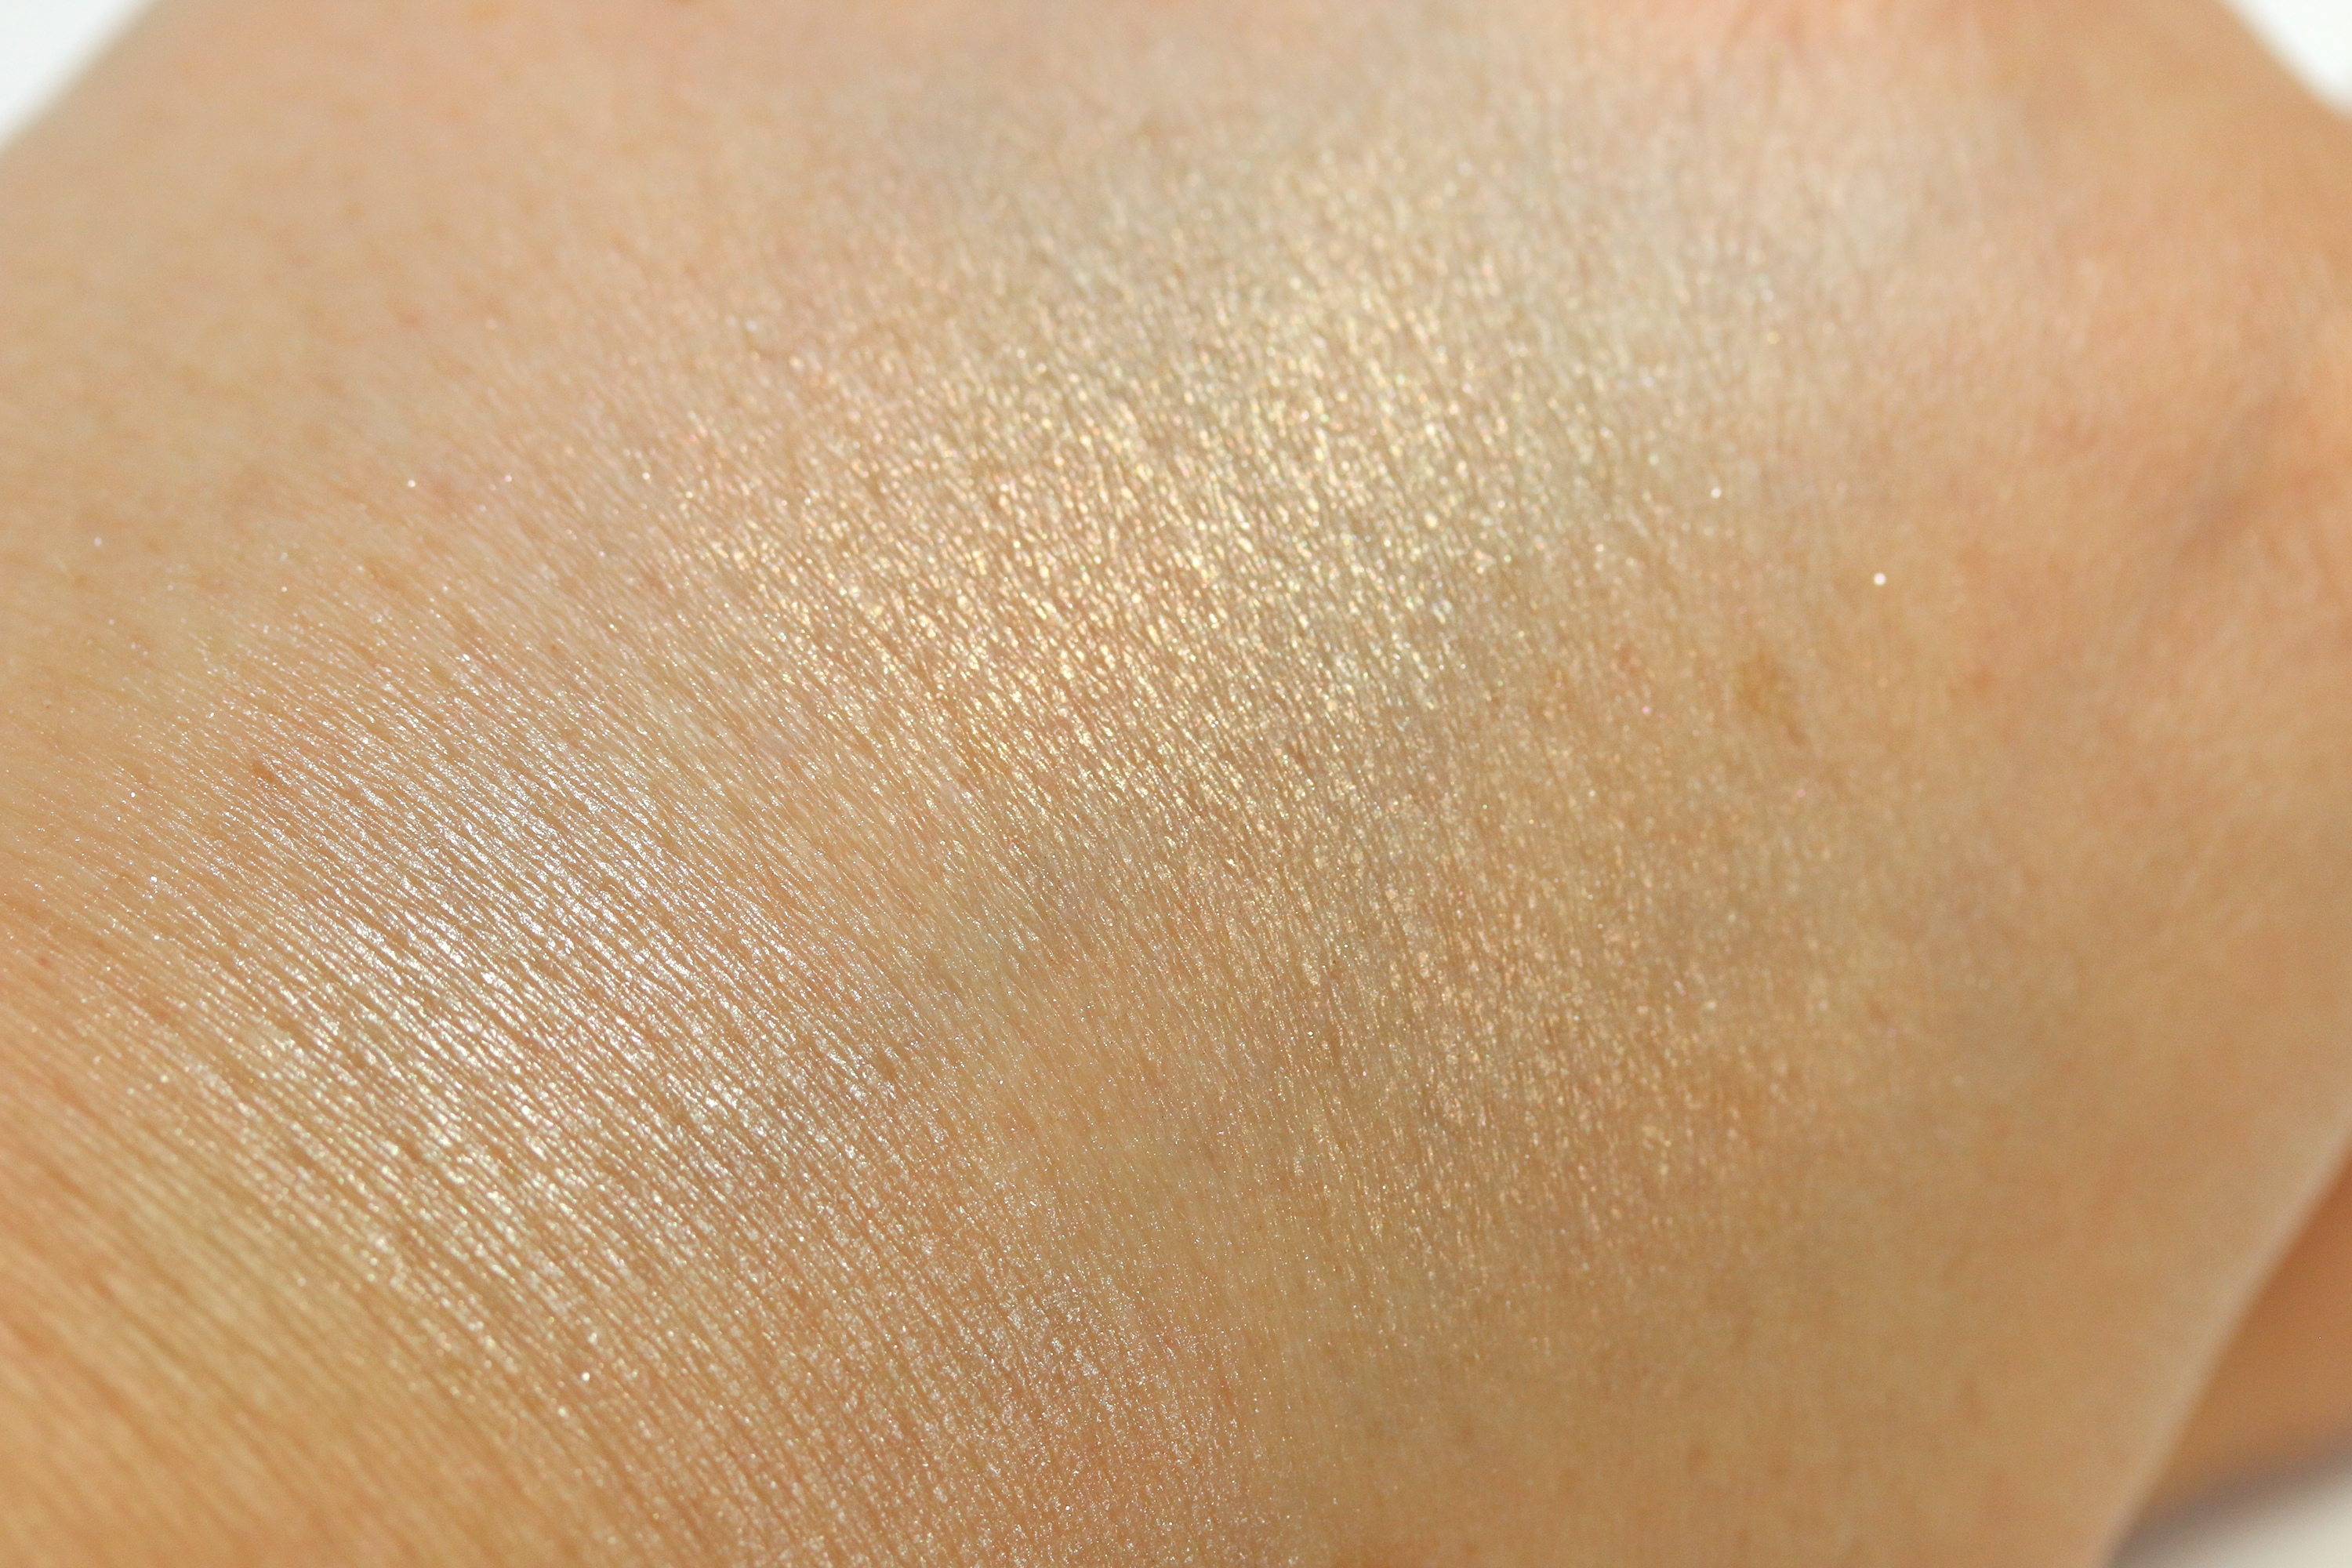 trend-it-up-highlighter-swatches